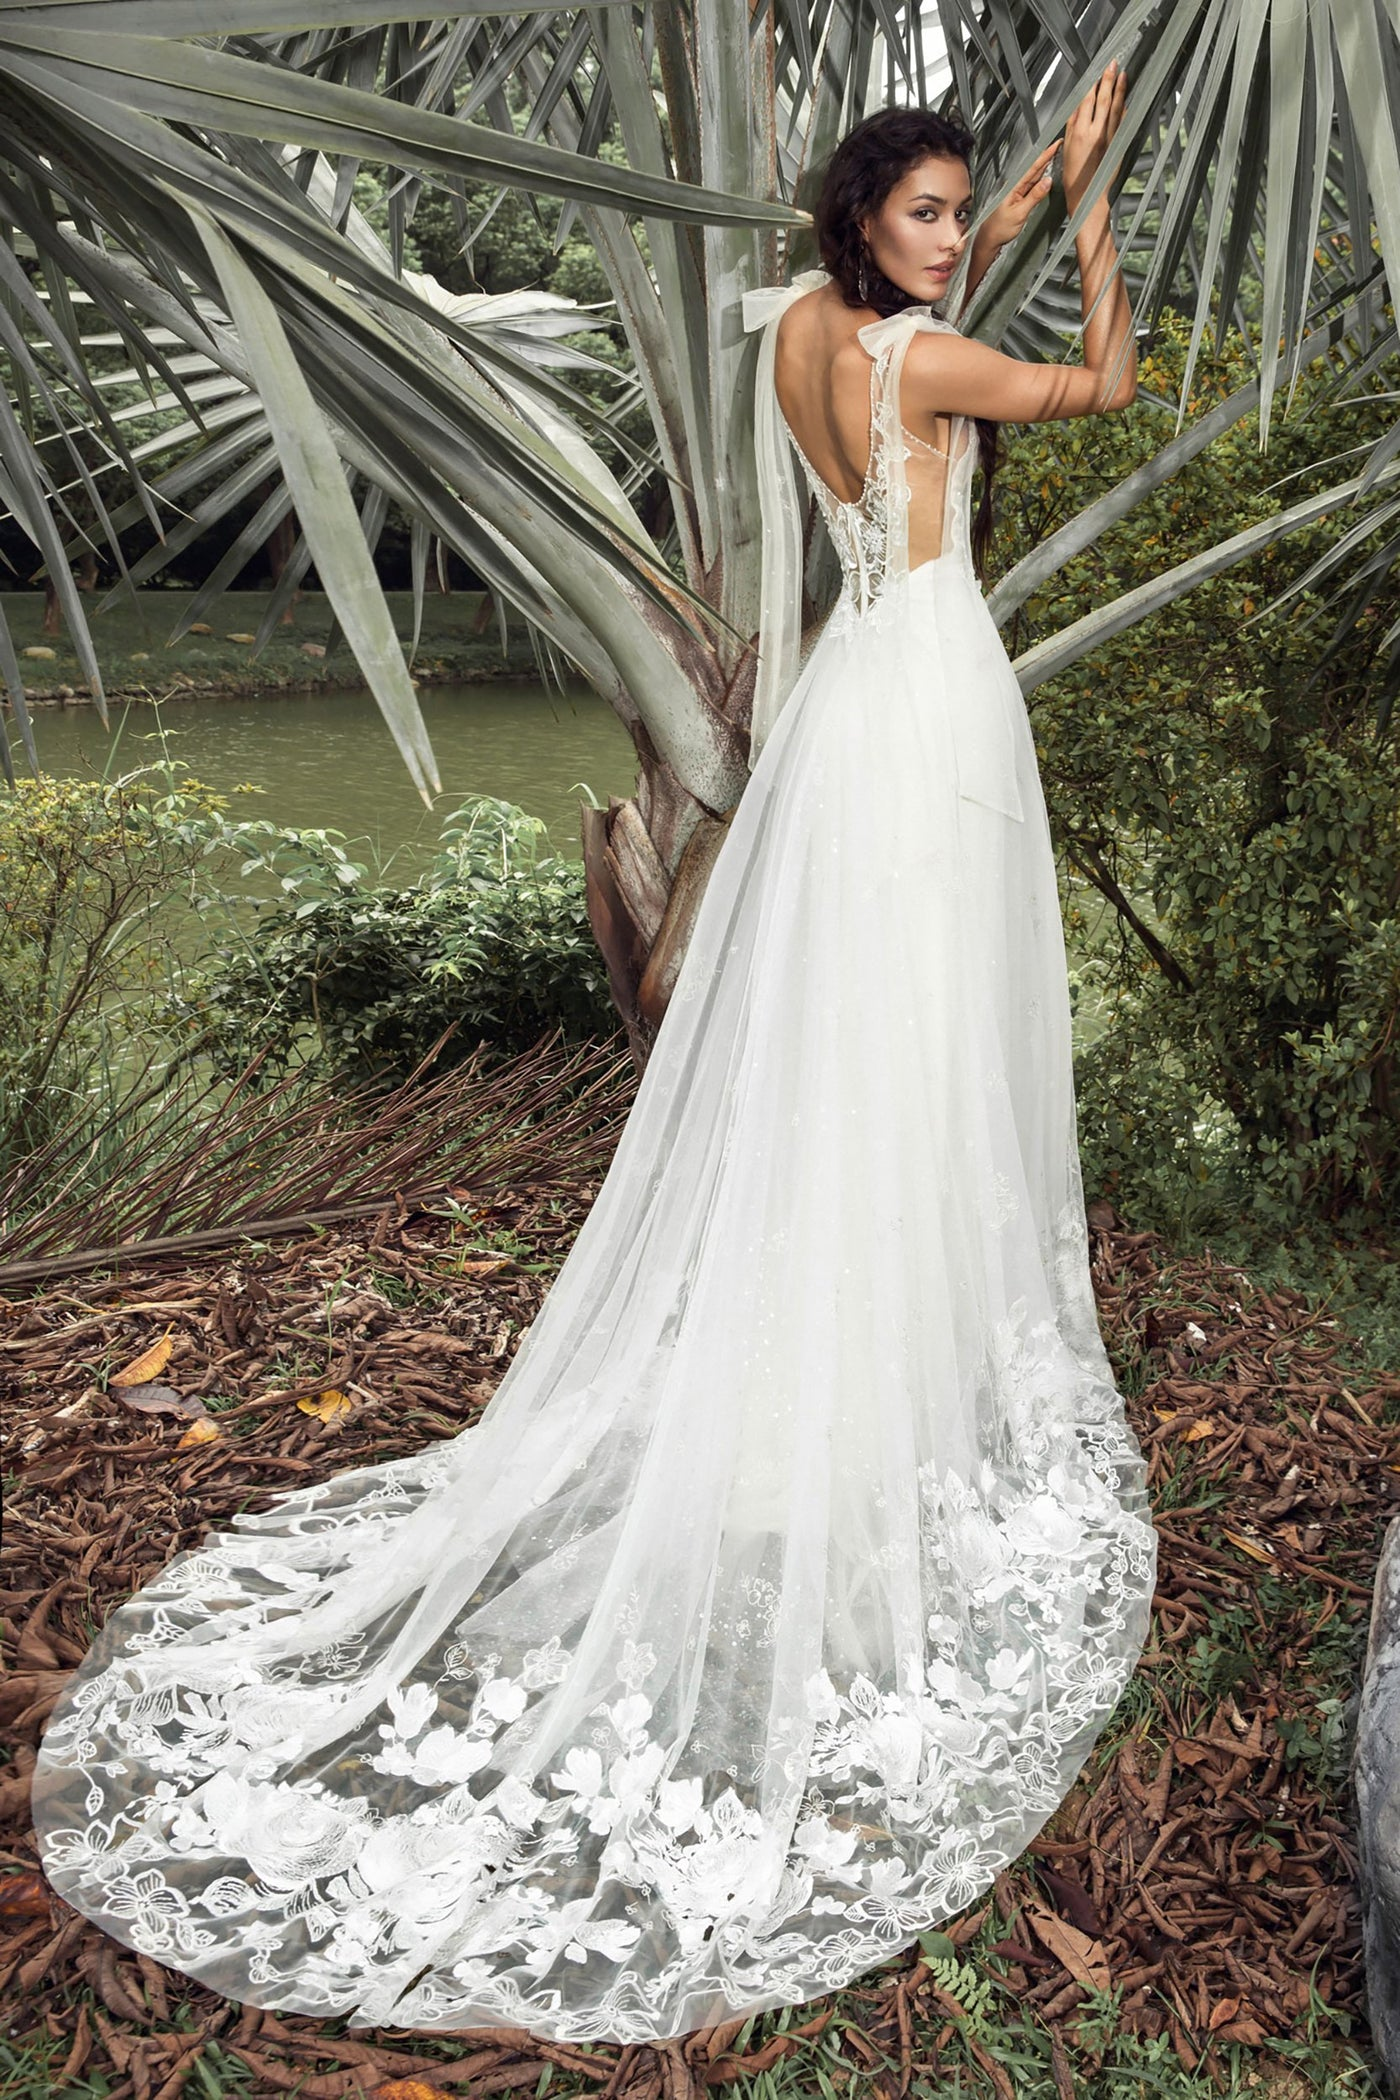 Paloma - Sample Gown, Online Sample Sale, Chic Nostalgia - Sample Gown - Eternal Bridal